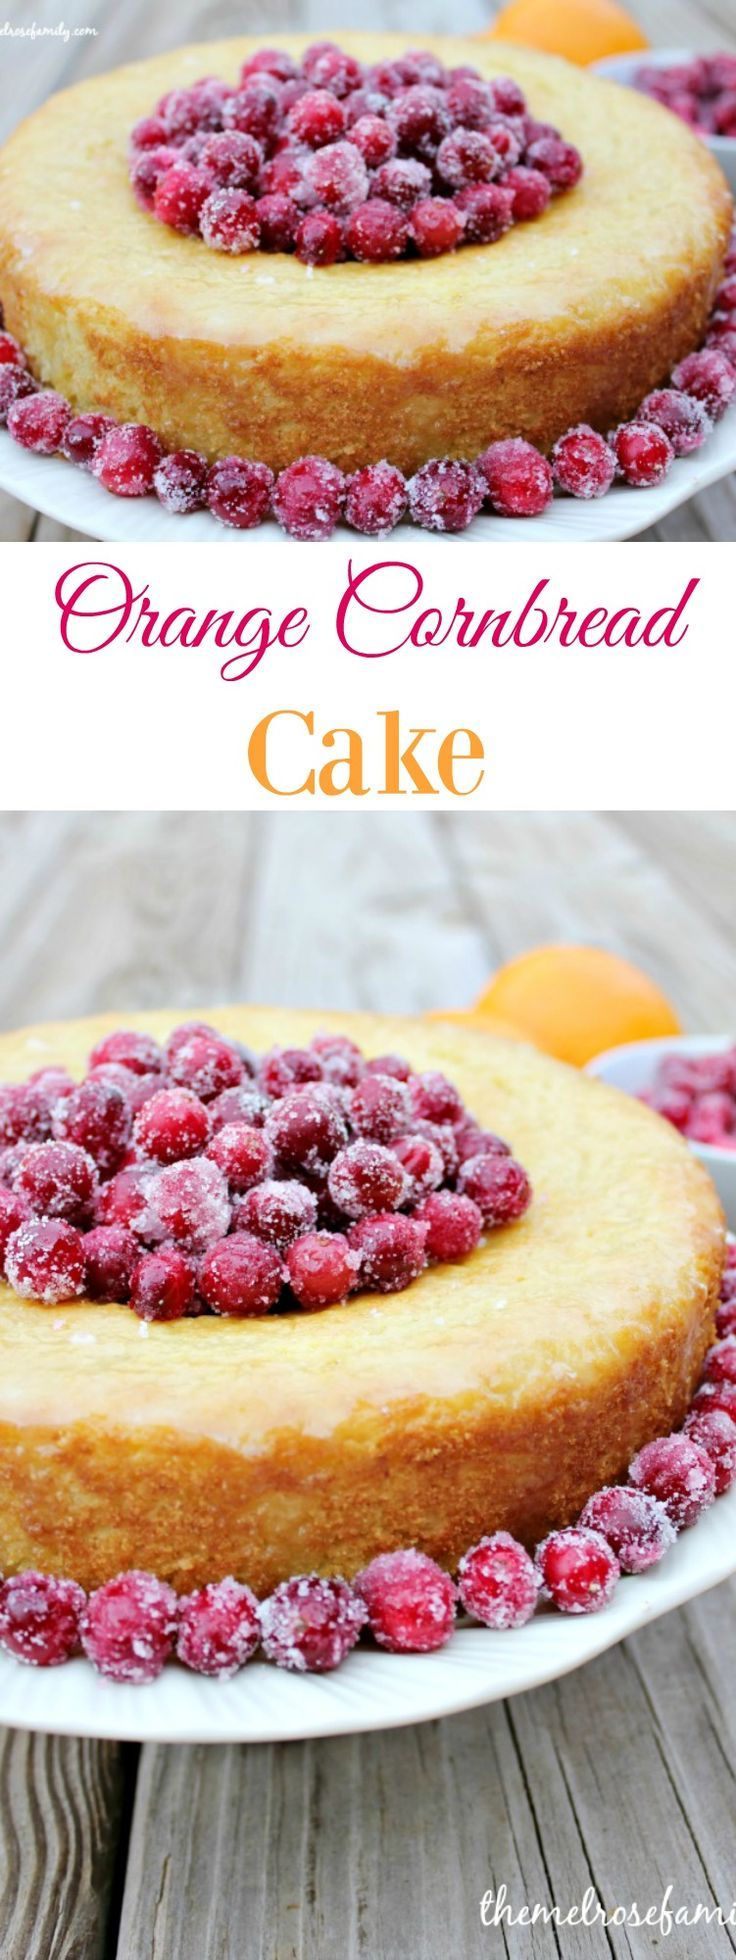 Orange Cornbread Cake with Orange Glaze and sugared Cranberries is perfect dessert for any occasion.